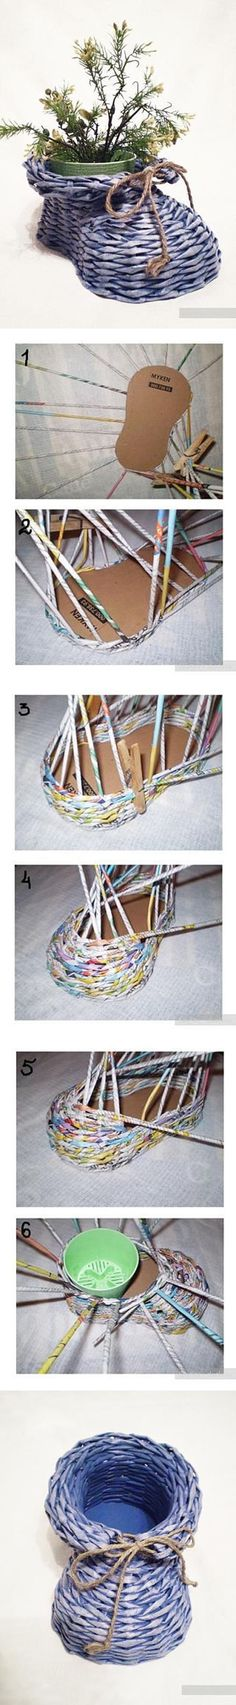 DIY Newpaper Roll Woven Shoe Vase | www.FabArtDIY.com LIKE Us on Facebook ==> https://www.facebook.com/FabArtDIY